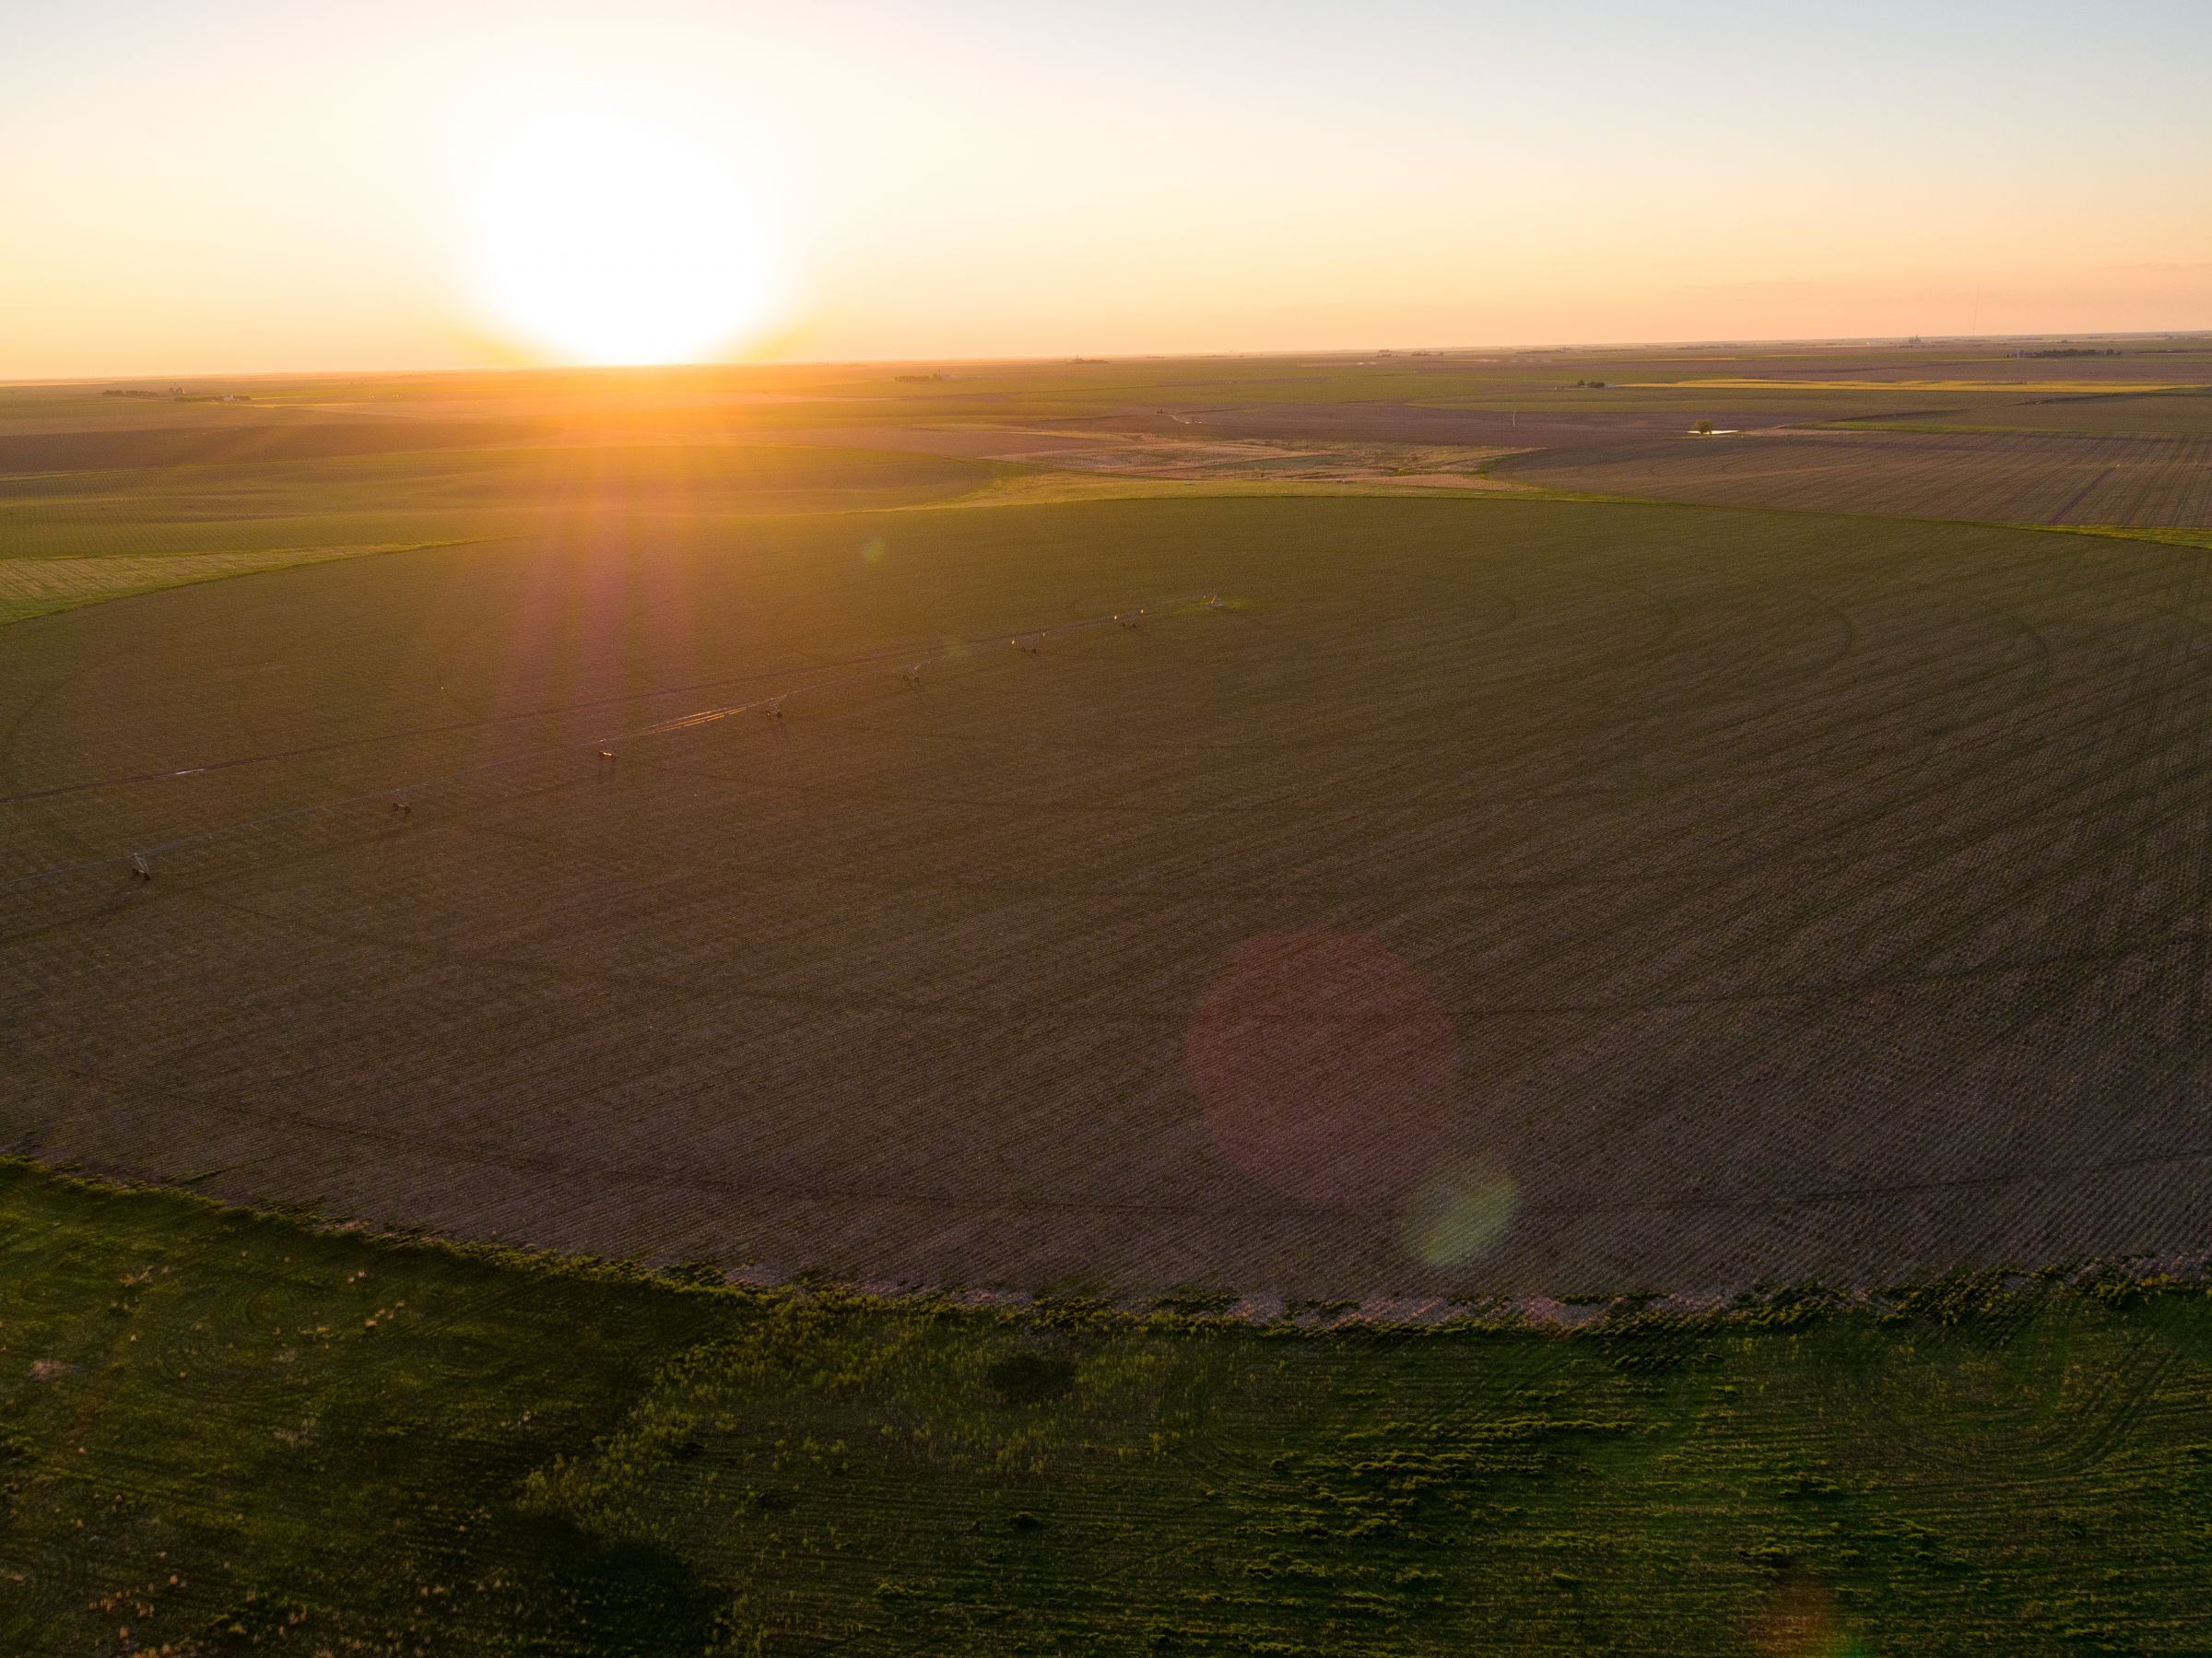 auctions-gray-haskell-county-kansas-2990-acres-listing-number-15570-1-2021-06-11-184113.jpeg